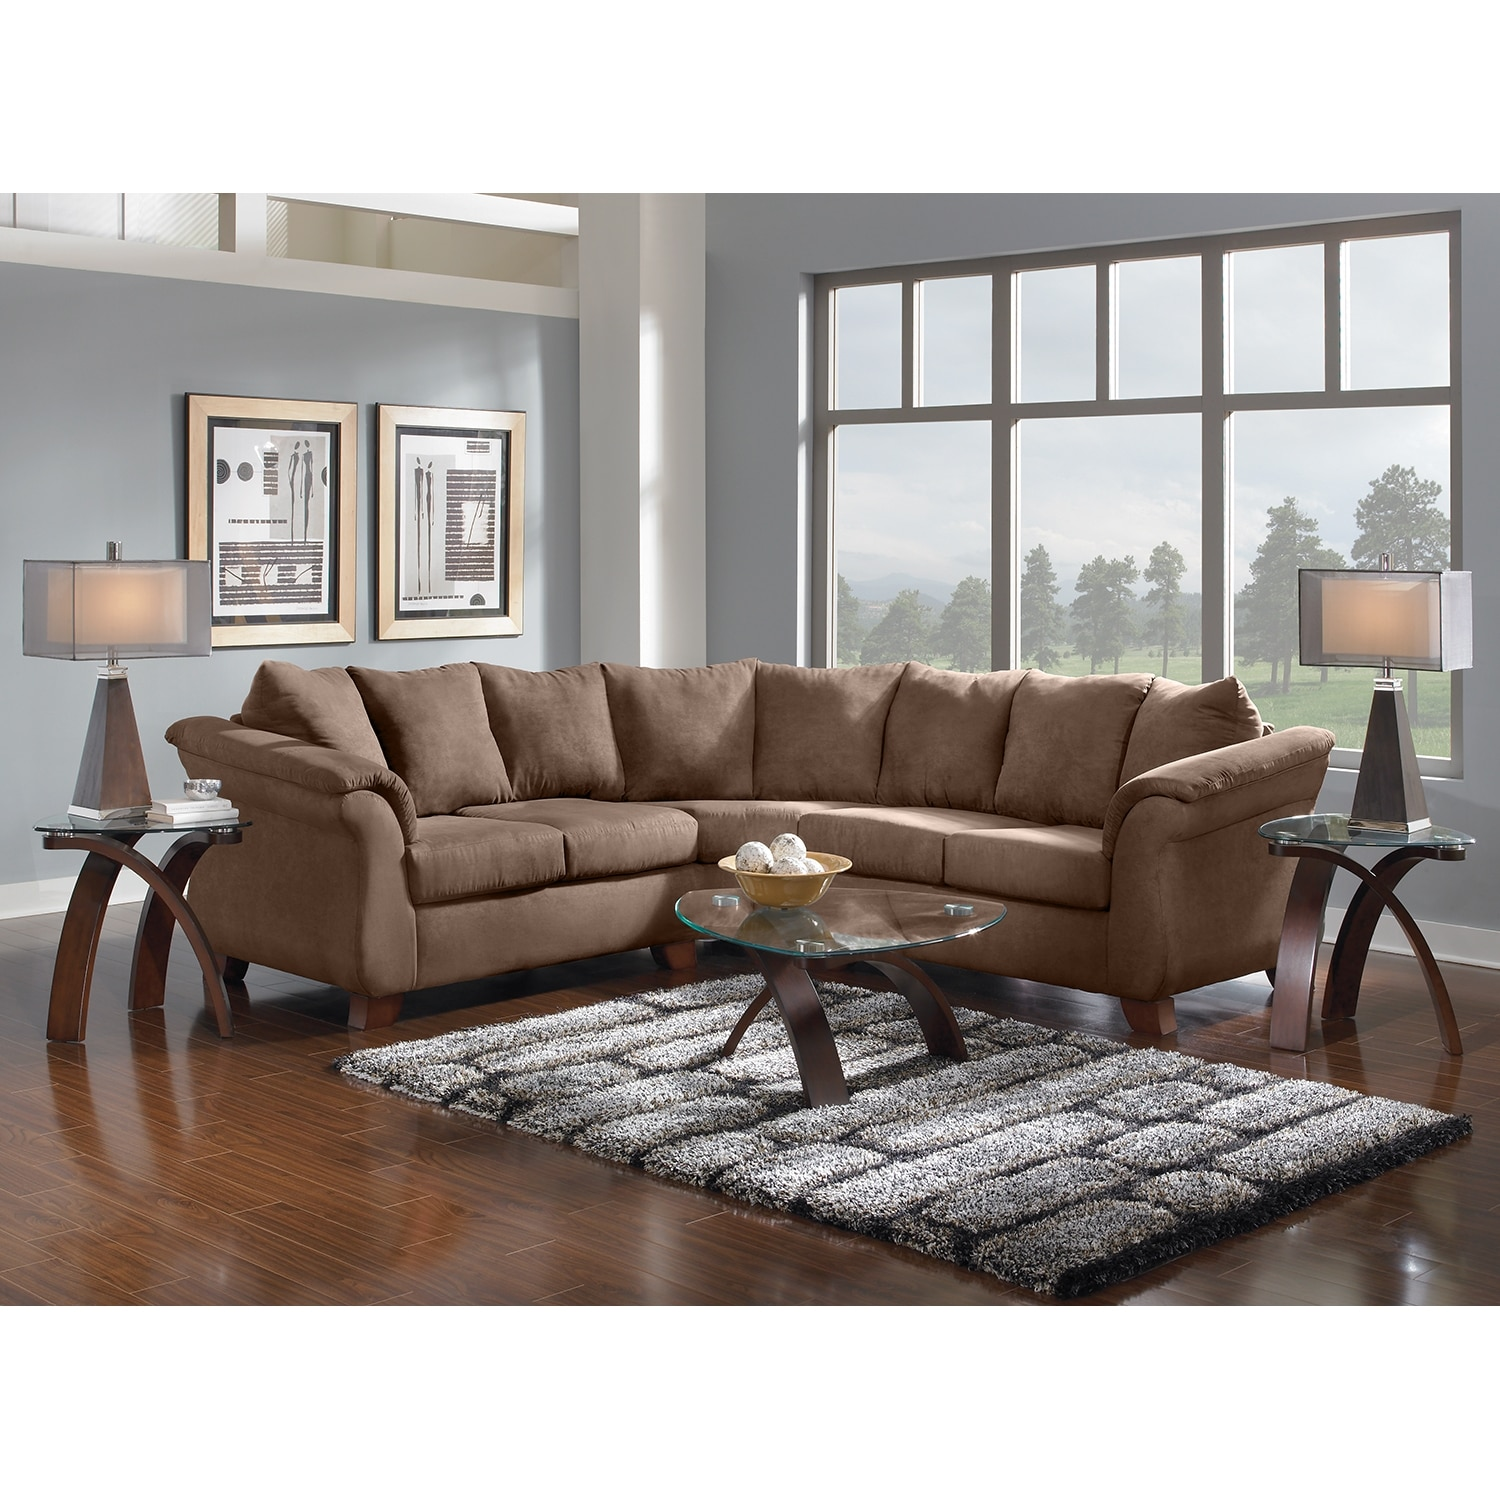 Adrian 2 piece sectional taupe value city furniture - Furniture living room design ...